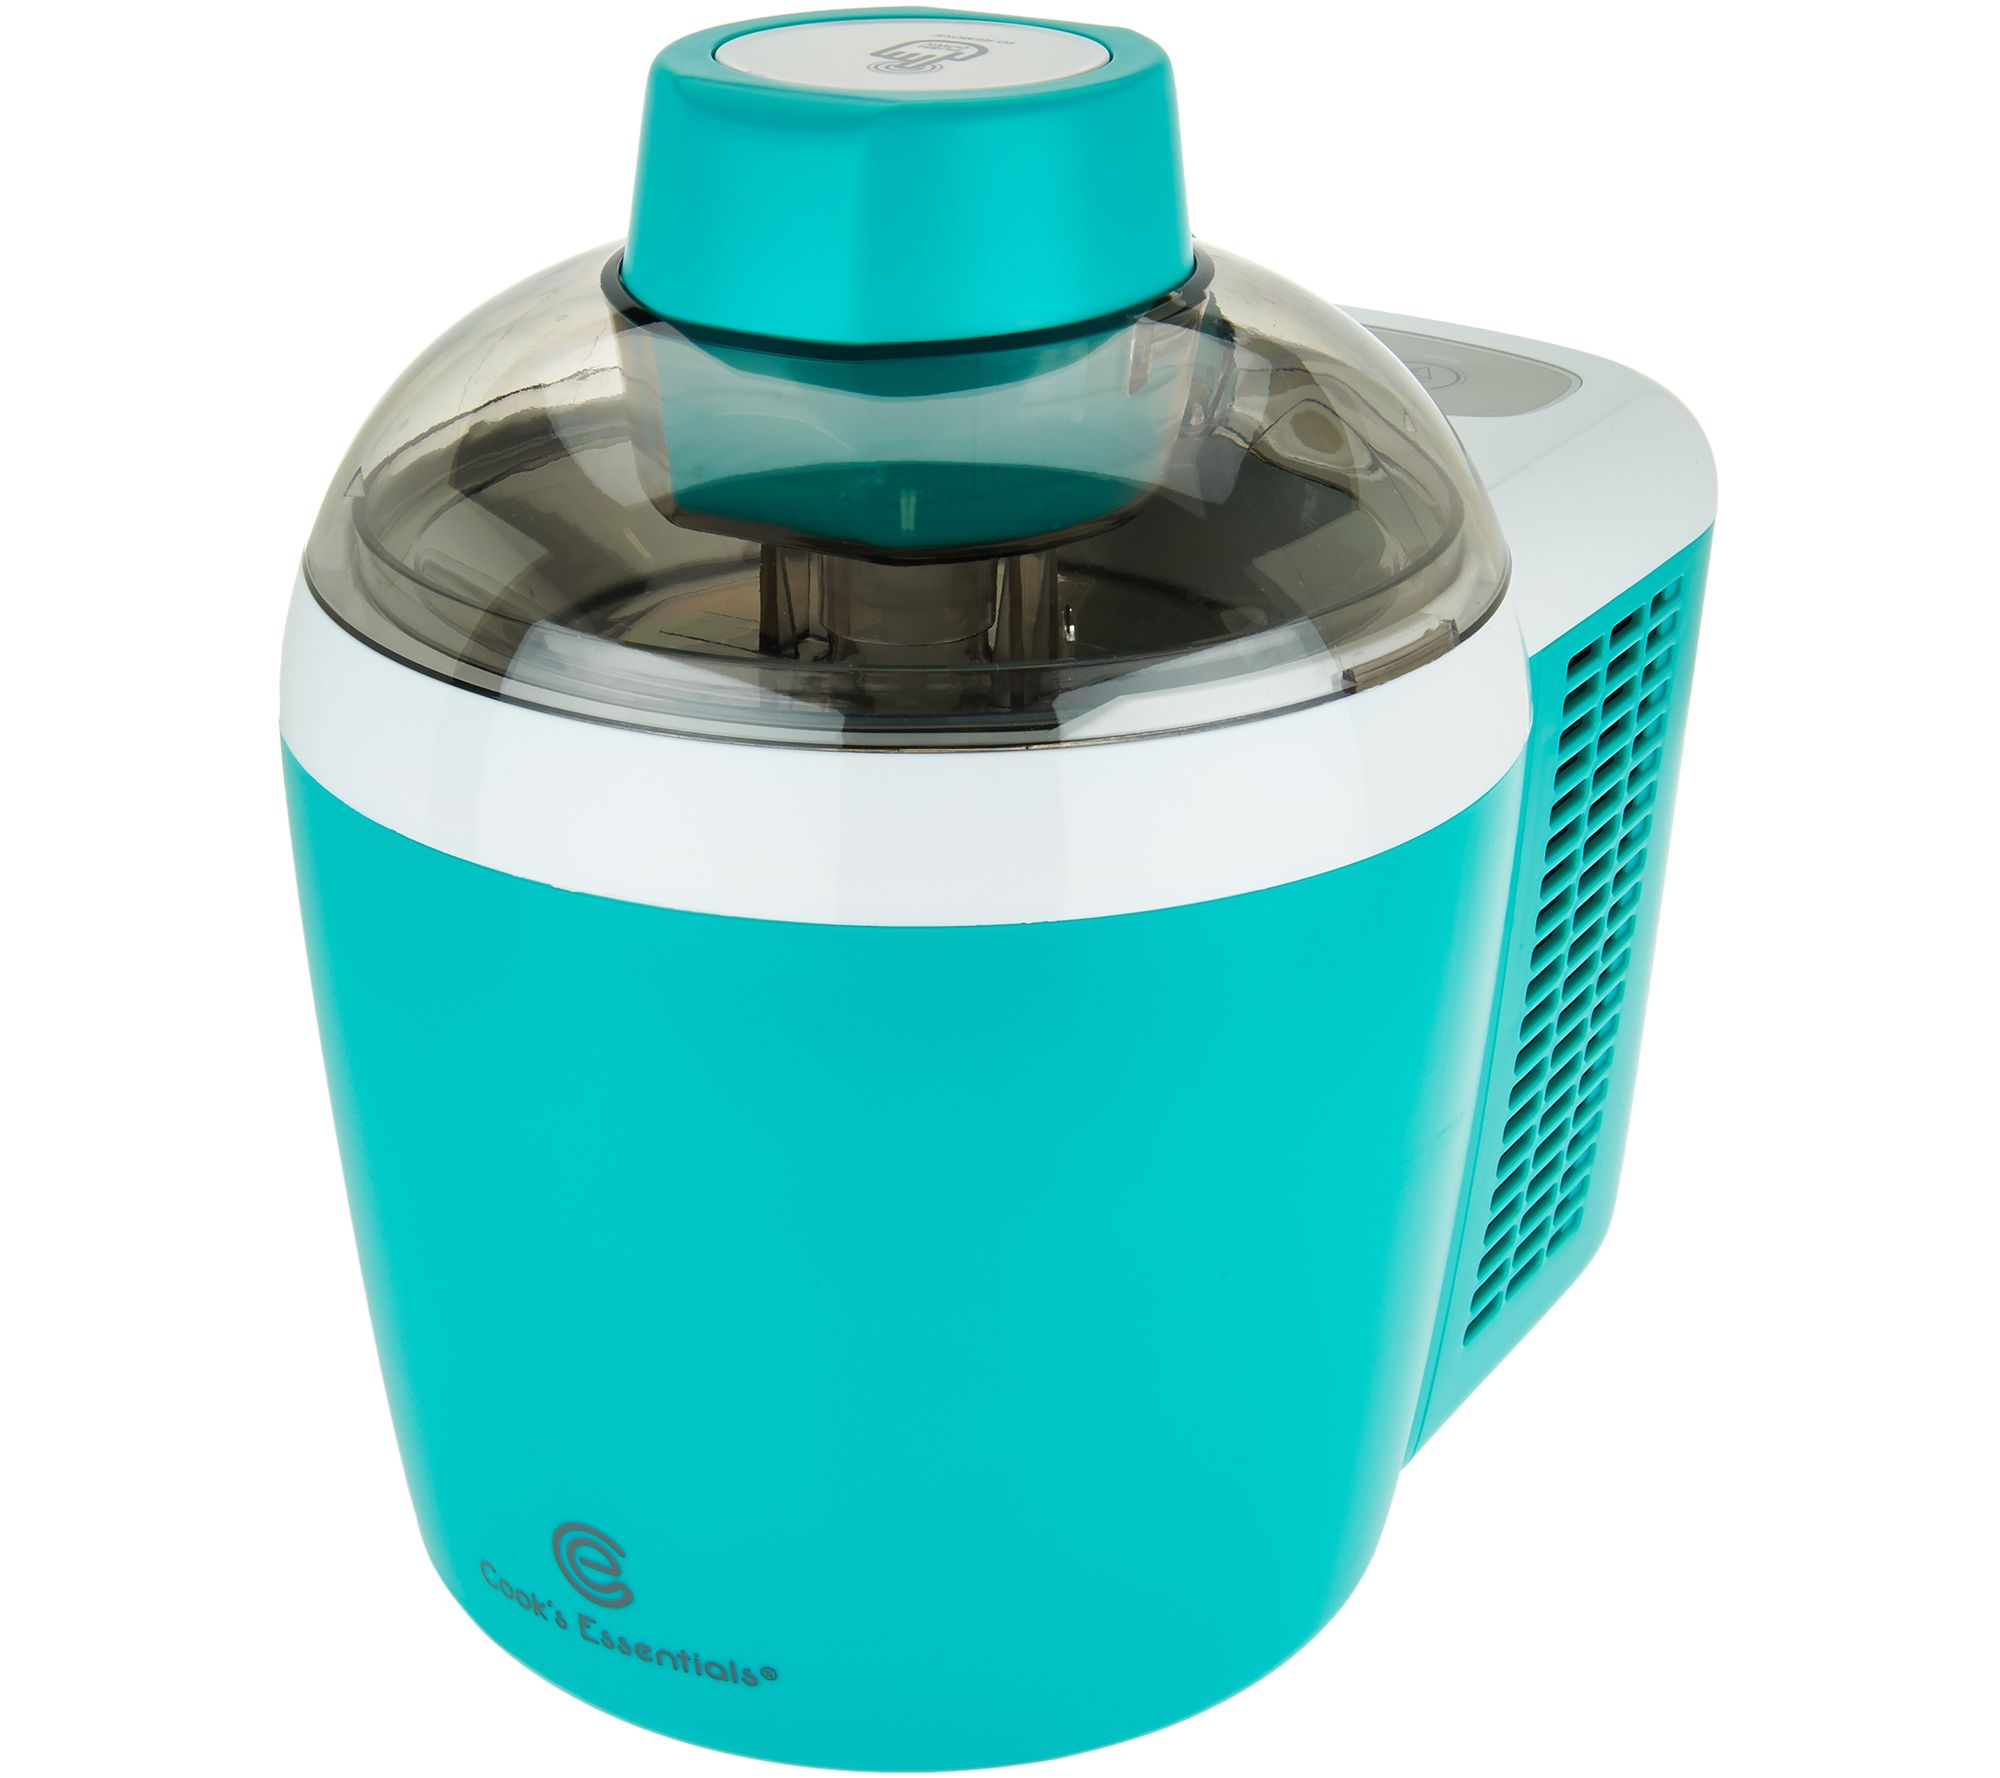 CooksEssentials 1.5 Pint Thermo-Electric Self-Freezing Ice Cream ...